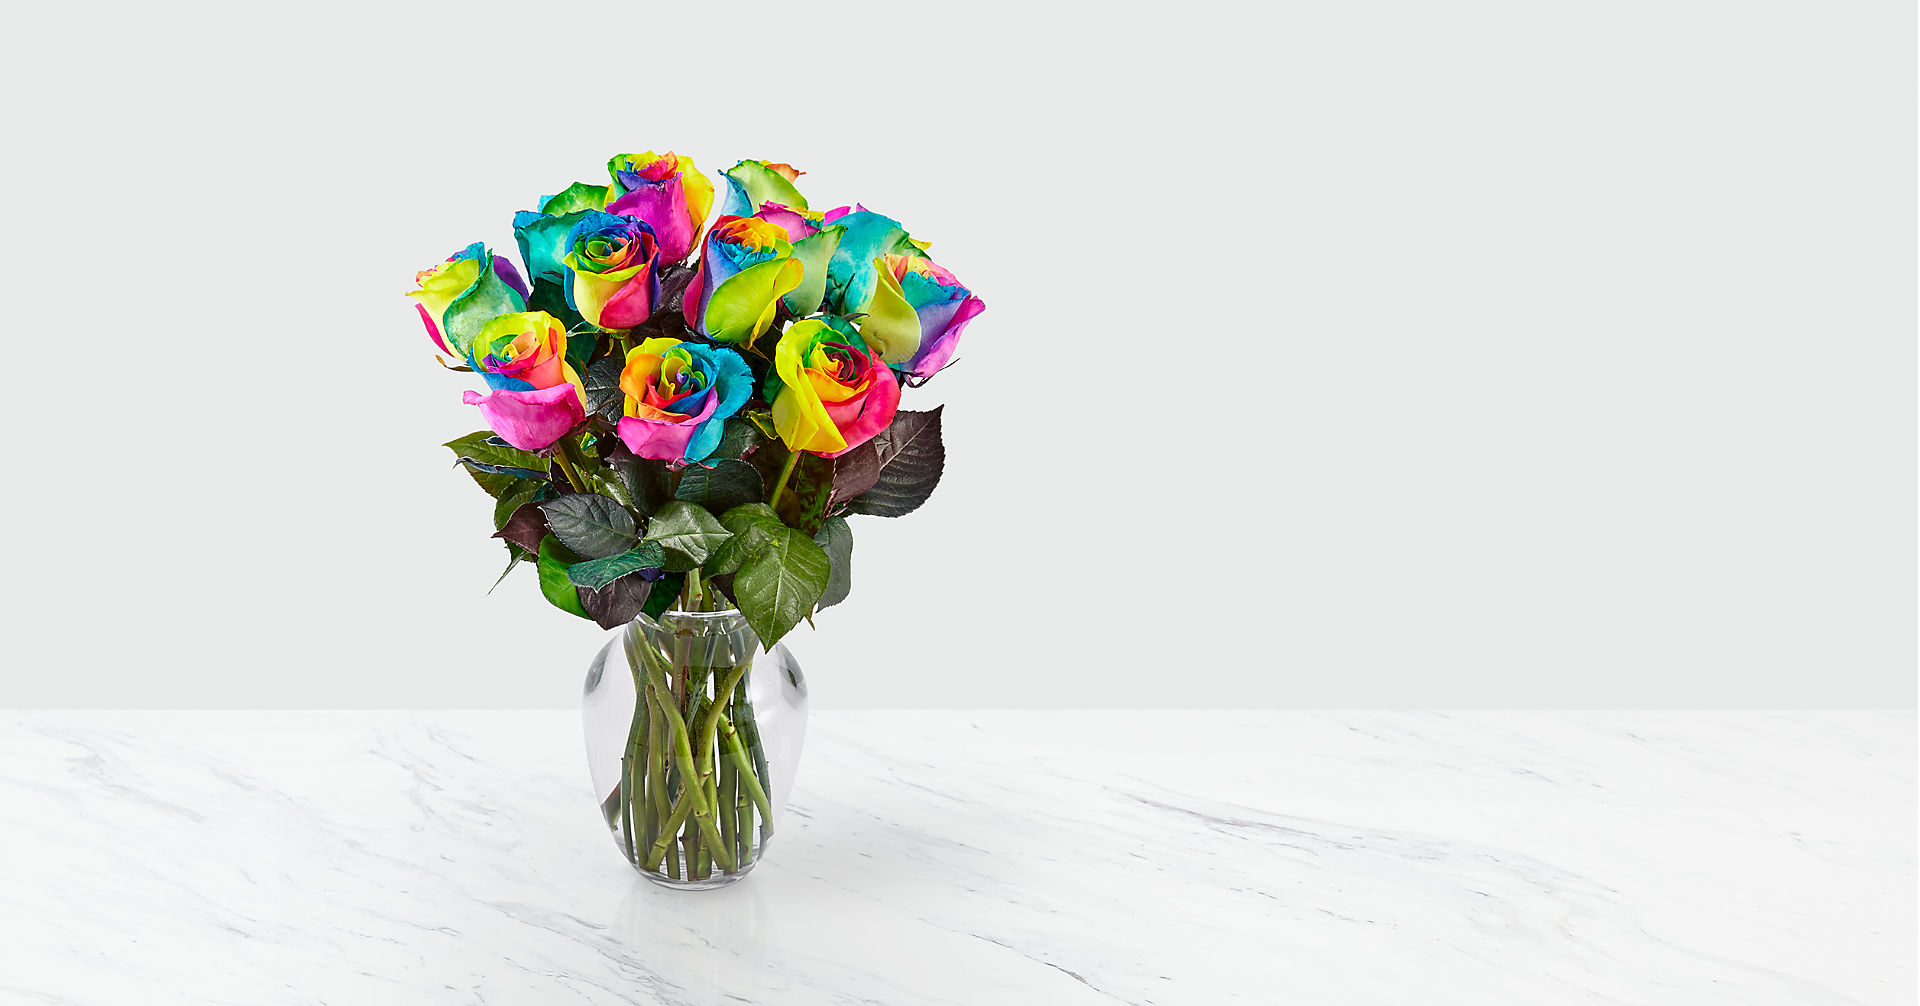 Time to Celebrate Rainbow Rose Bouquet - Image 2 Of 4